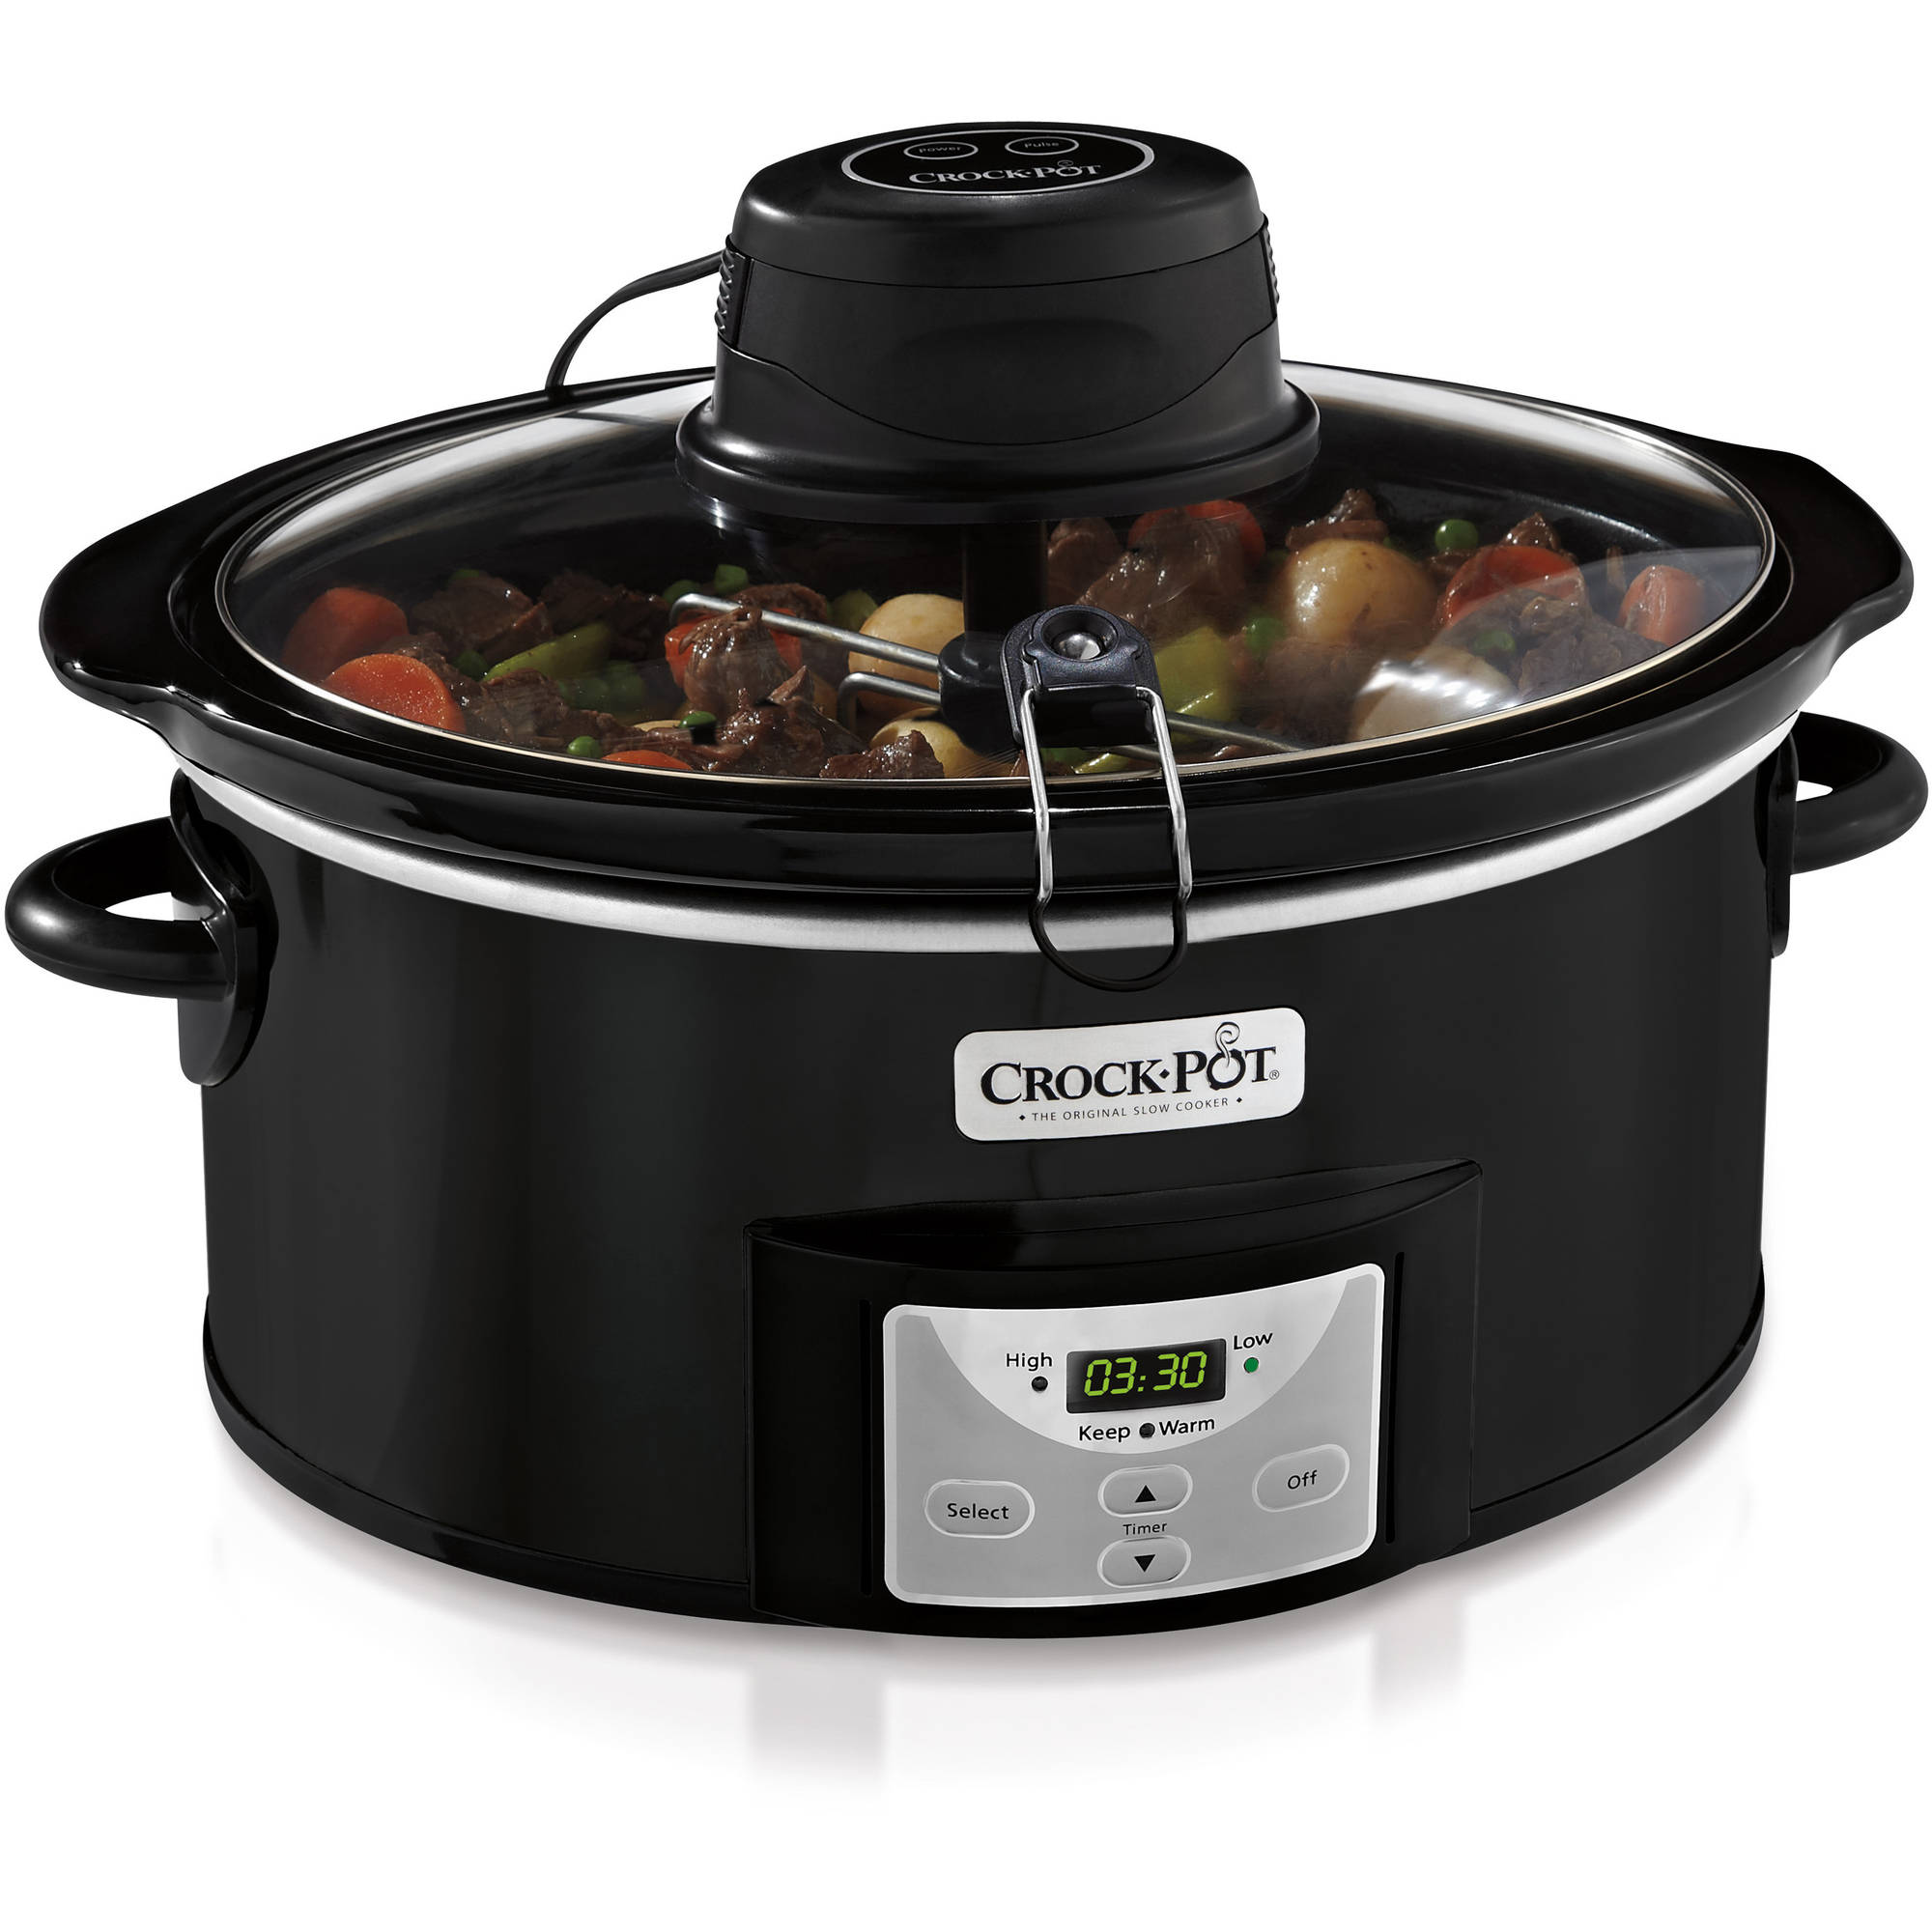 Crock-Pot 6-quart iStir Automatic Stirring Slow Cooker